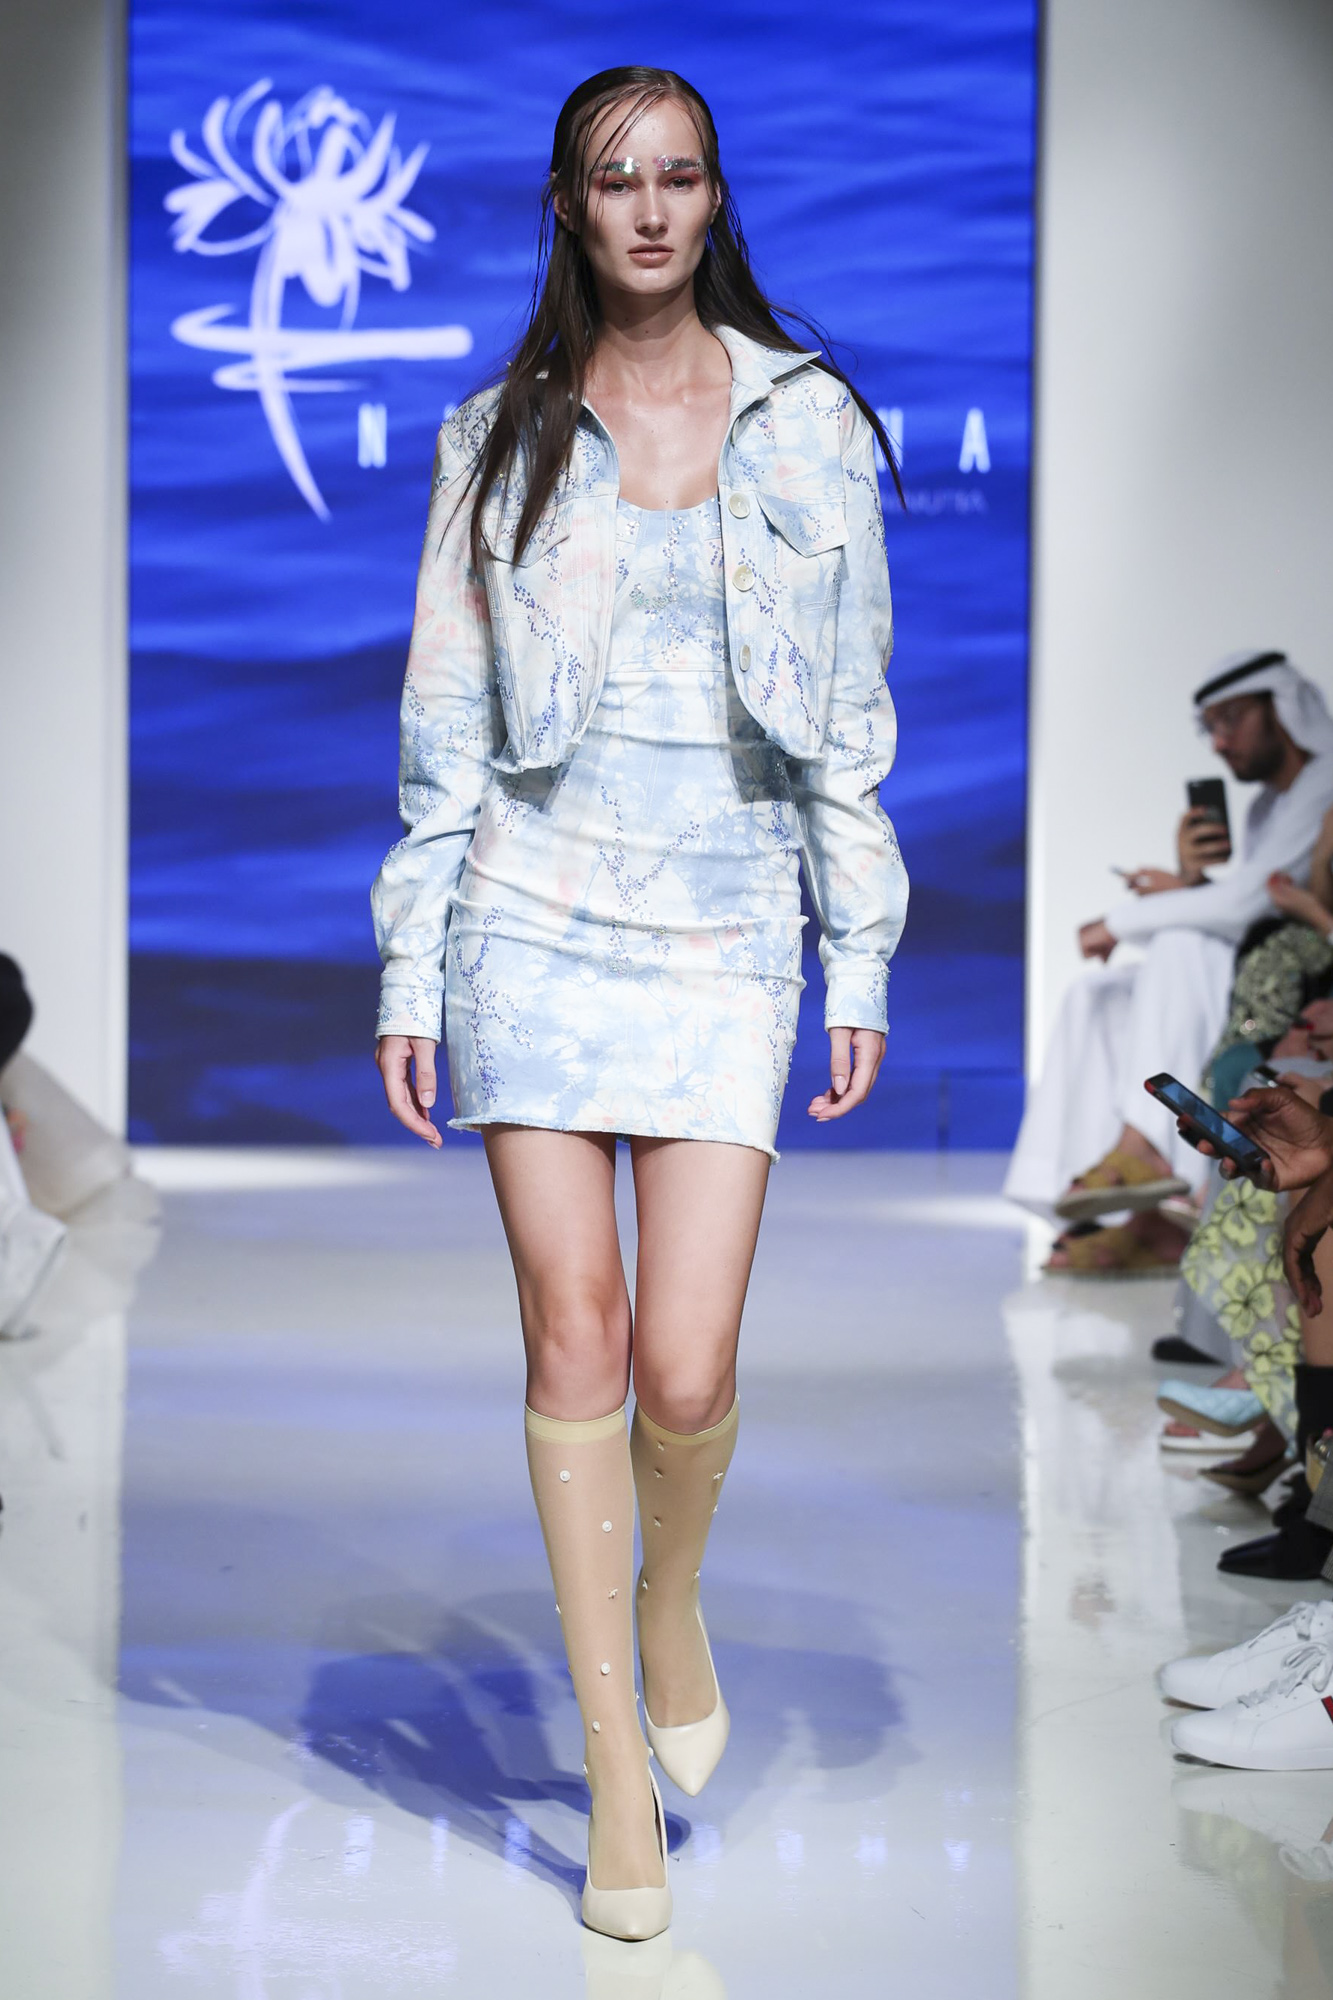 Nirmooha fashion show, Arab Fashion Week collection Spring Summer 2020 in Dubai